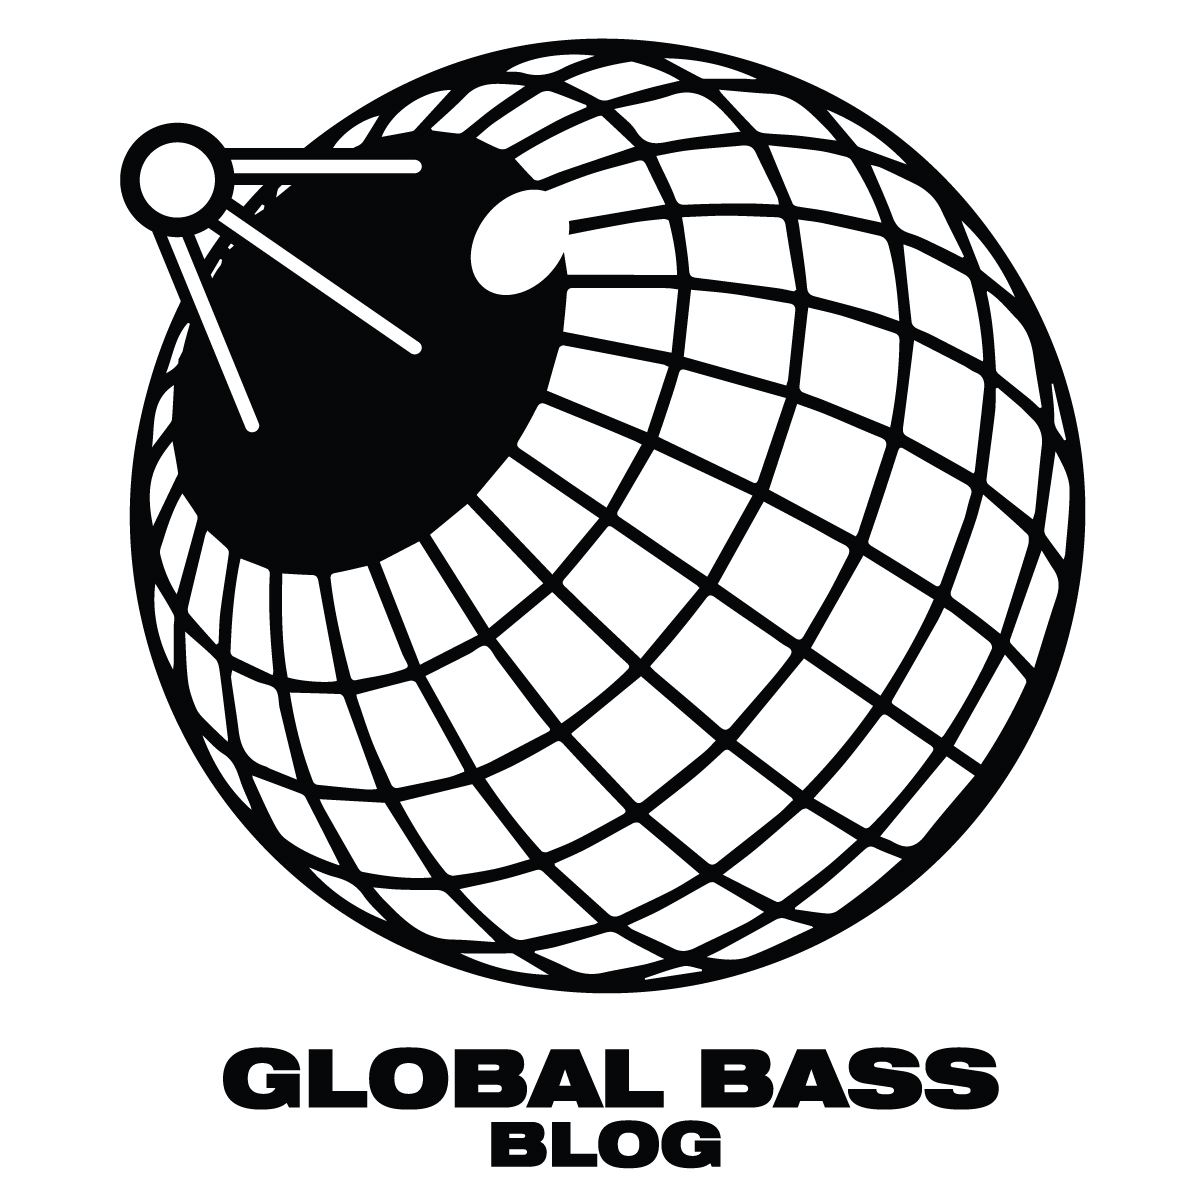 GLOBAL BASS BLOG